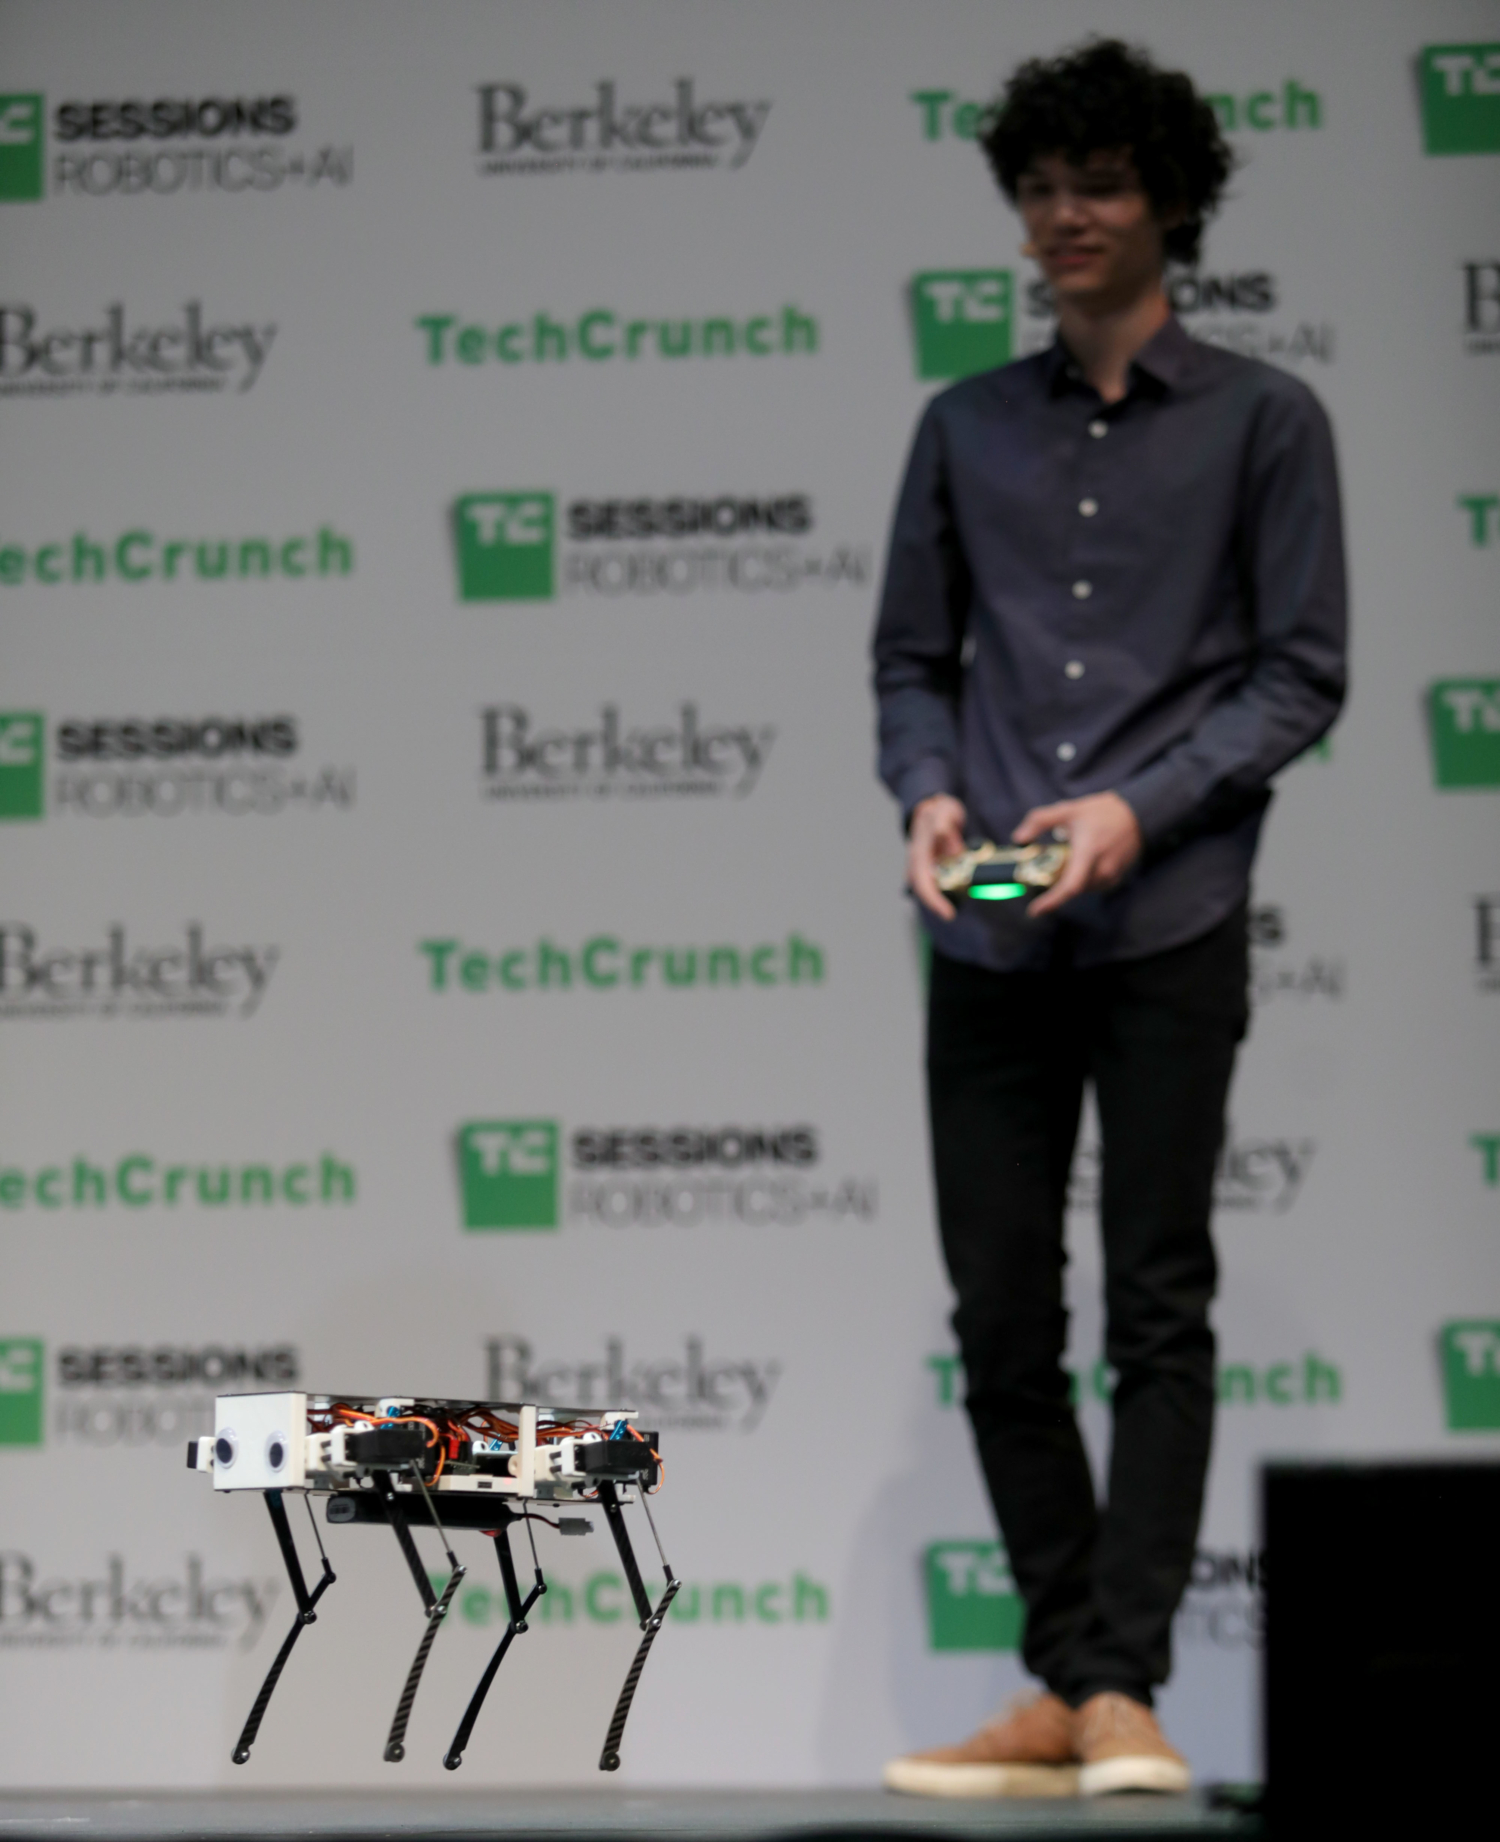 Robot presented at TC Sessions: Robotics + AI 2020 at Zellerbach Hall in Berkeley, CA on March 3, 2020 (credits: Max Morse for TechCrunch / Flickr Creative Commons Attribution 2.0 Generic (CC BY 2.0))